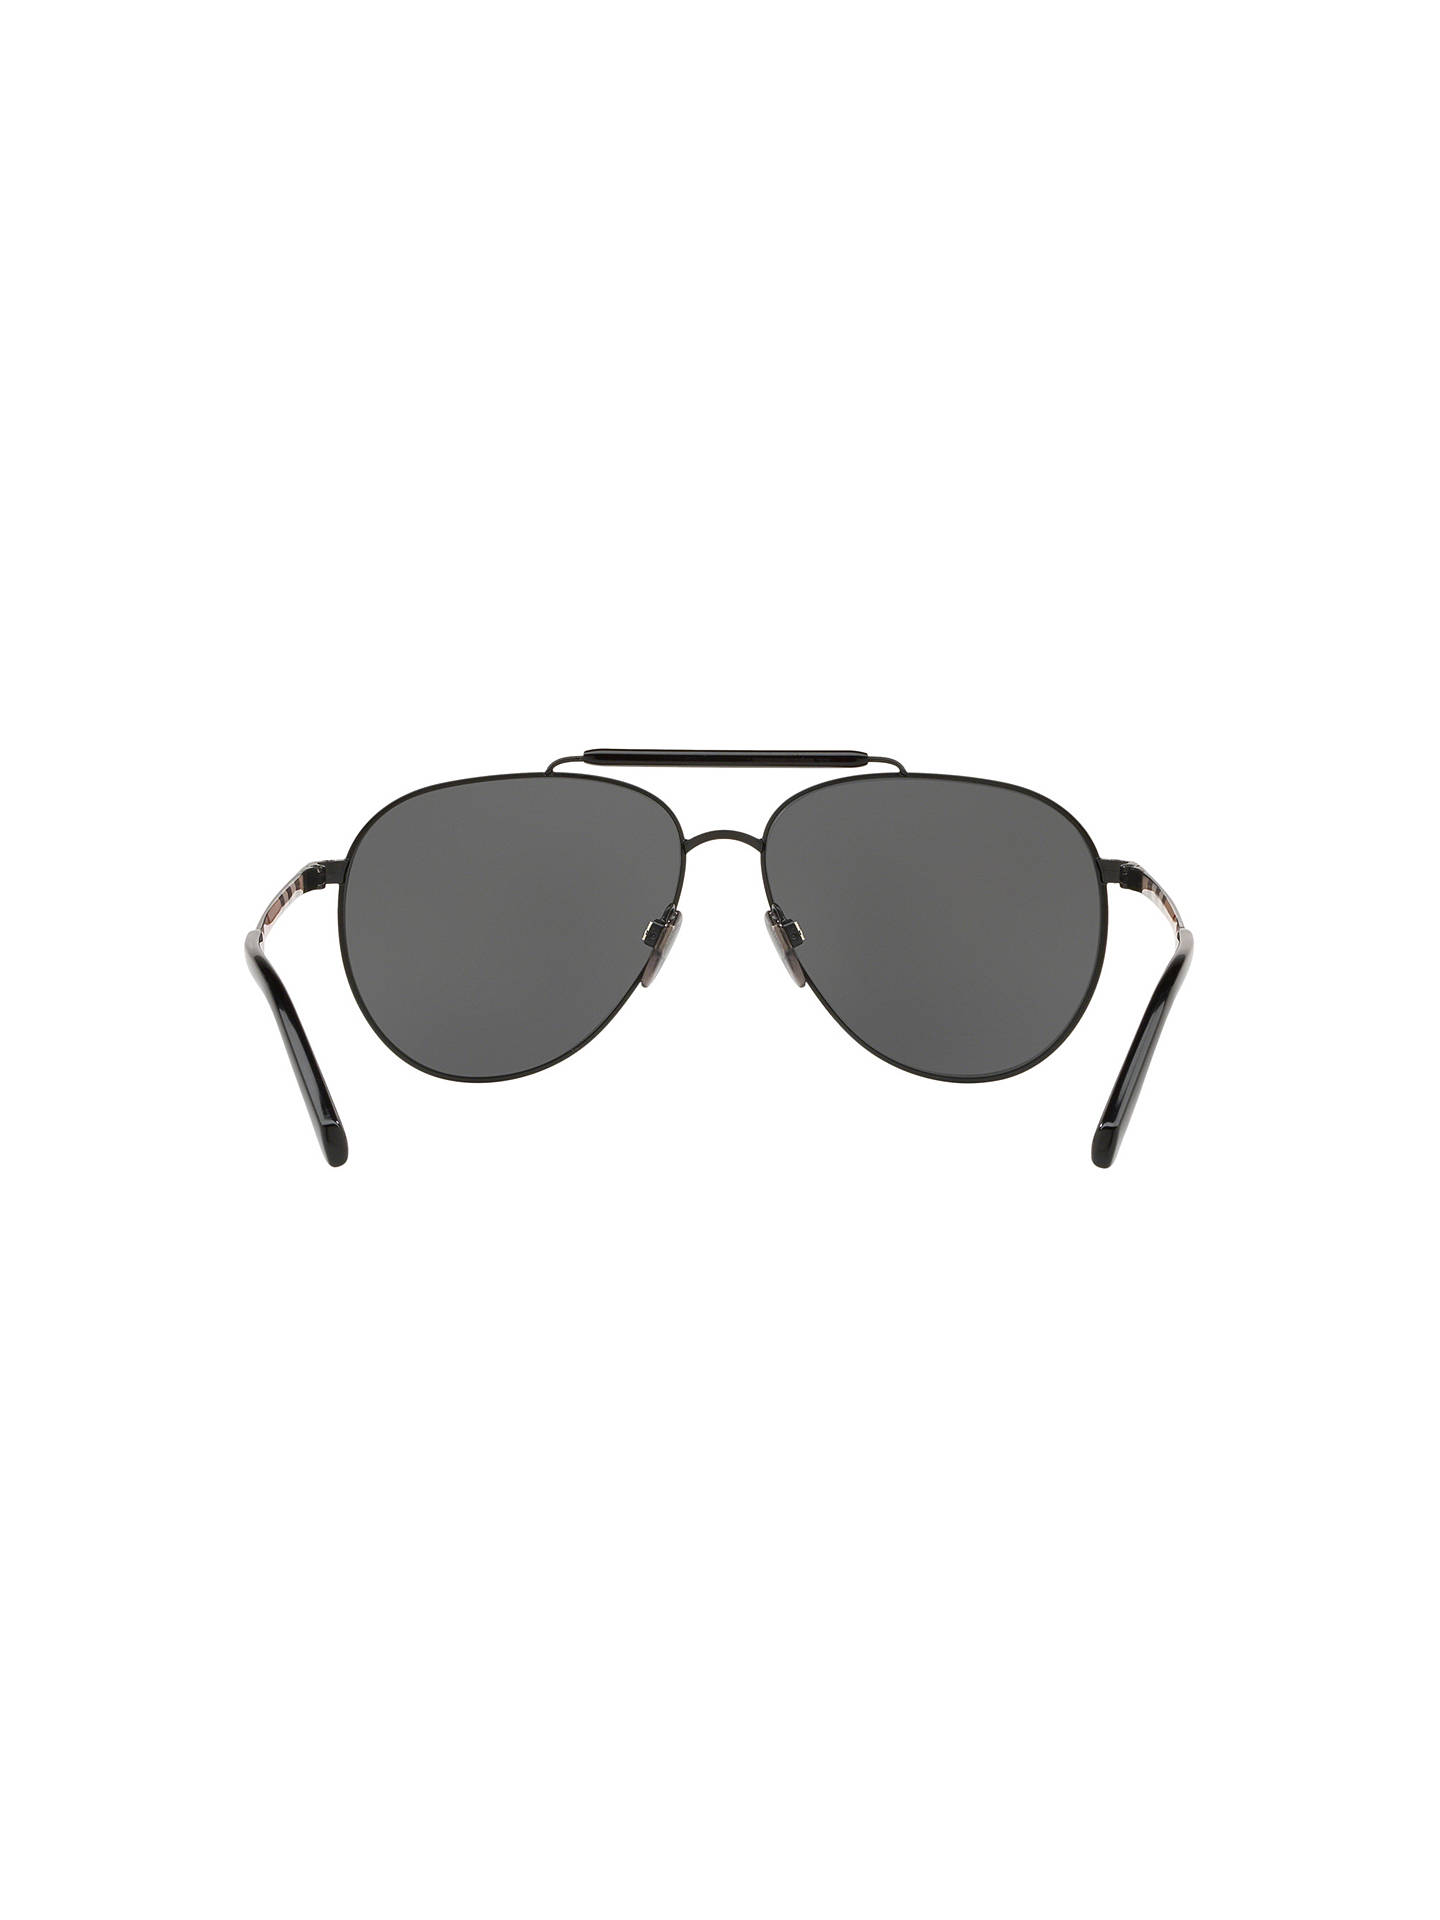 BuyBurberry BE3097 Men's Aviator Sunglasses, Grey Online at johnlewis.com